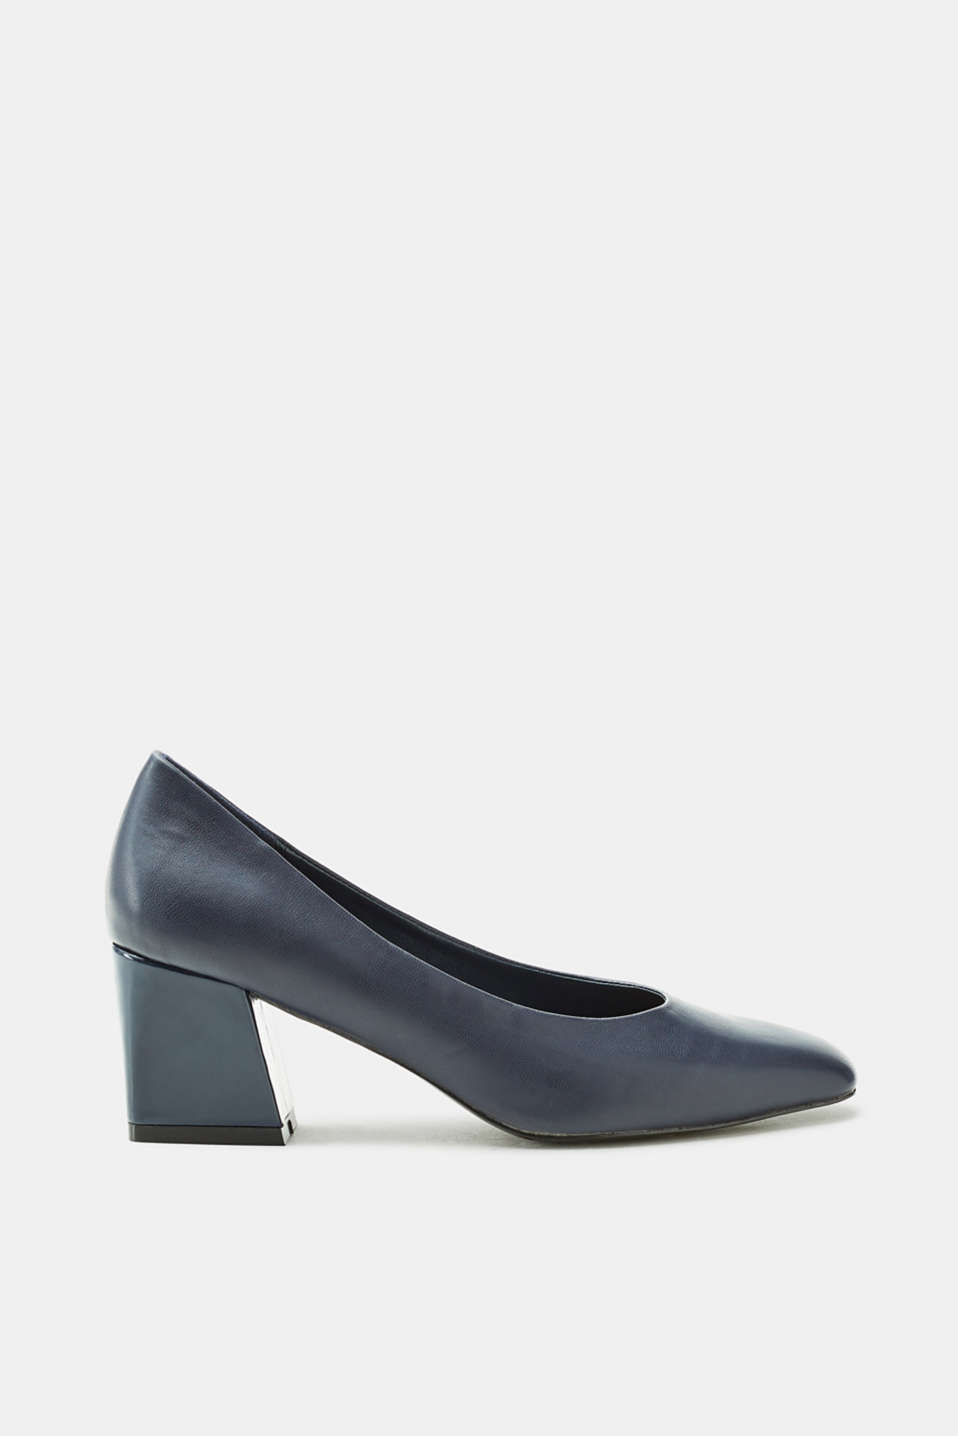 Esprit - Court shoes with a block heel